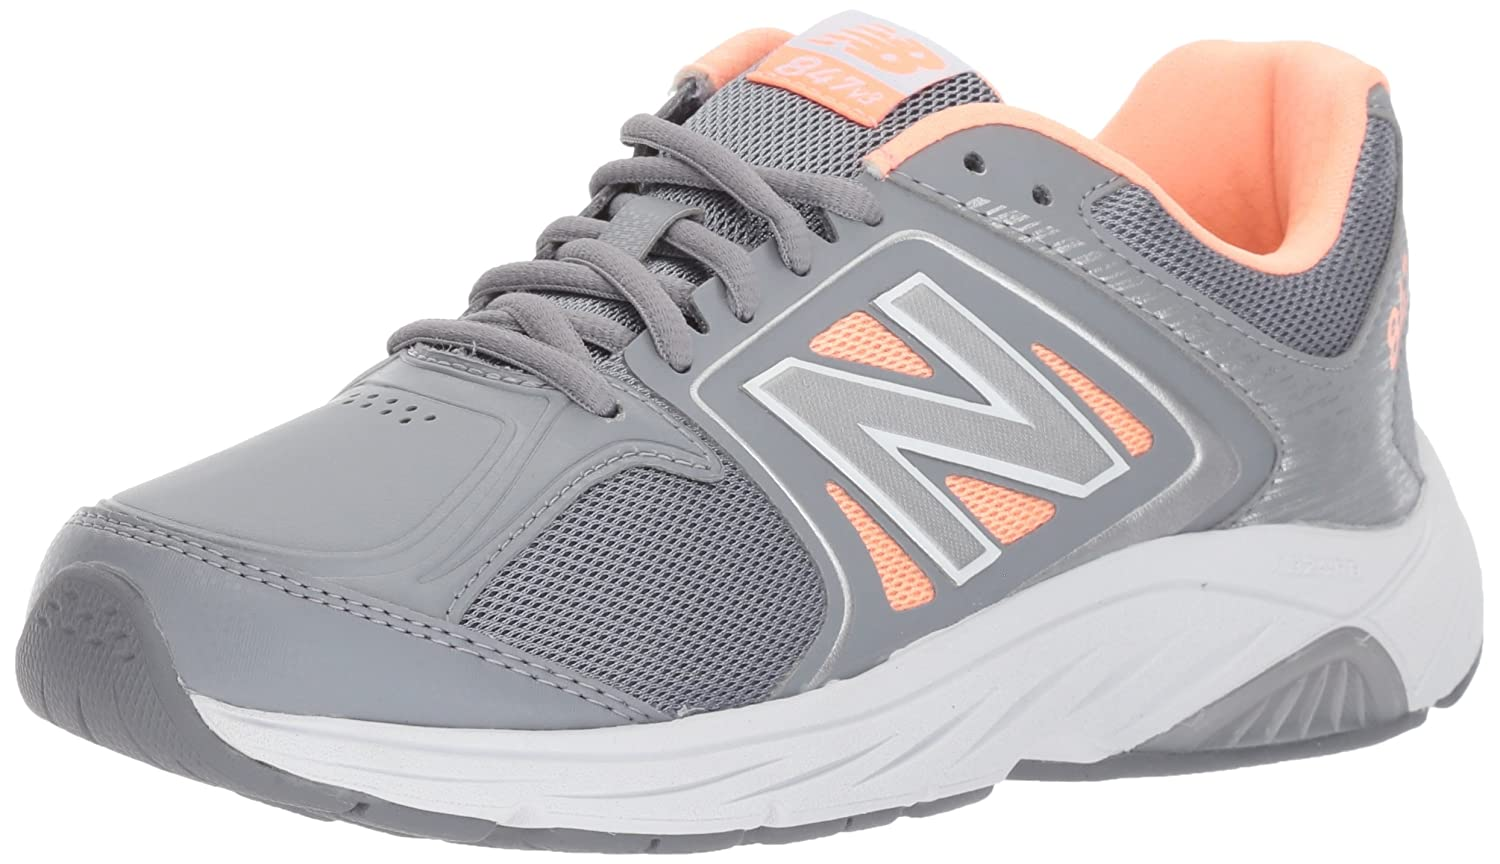 New Balance Women's 847v3 Walking Shoe B01MSOSFRX 6.5 D US|Grey/Pink